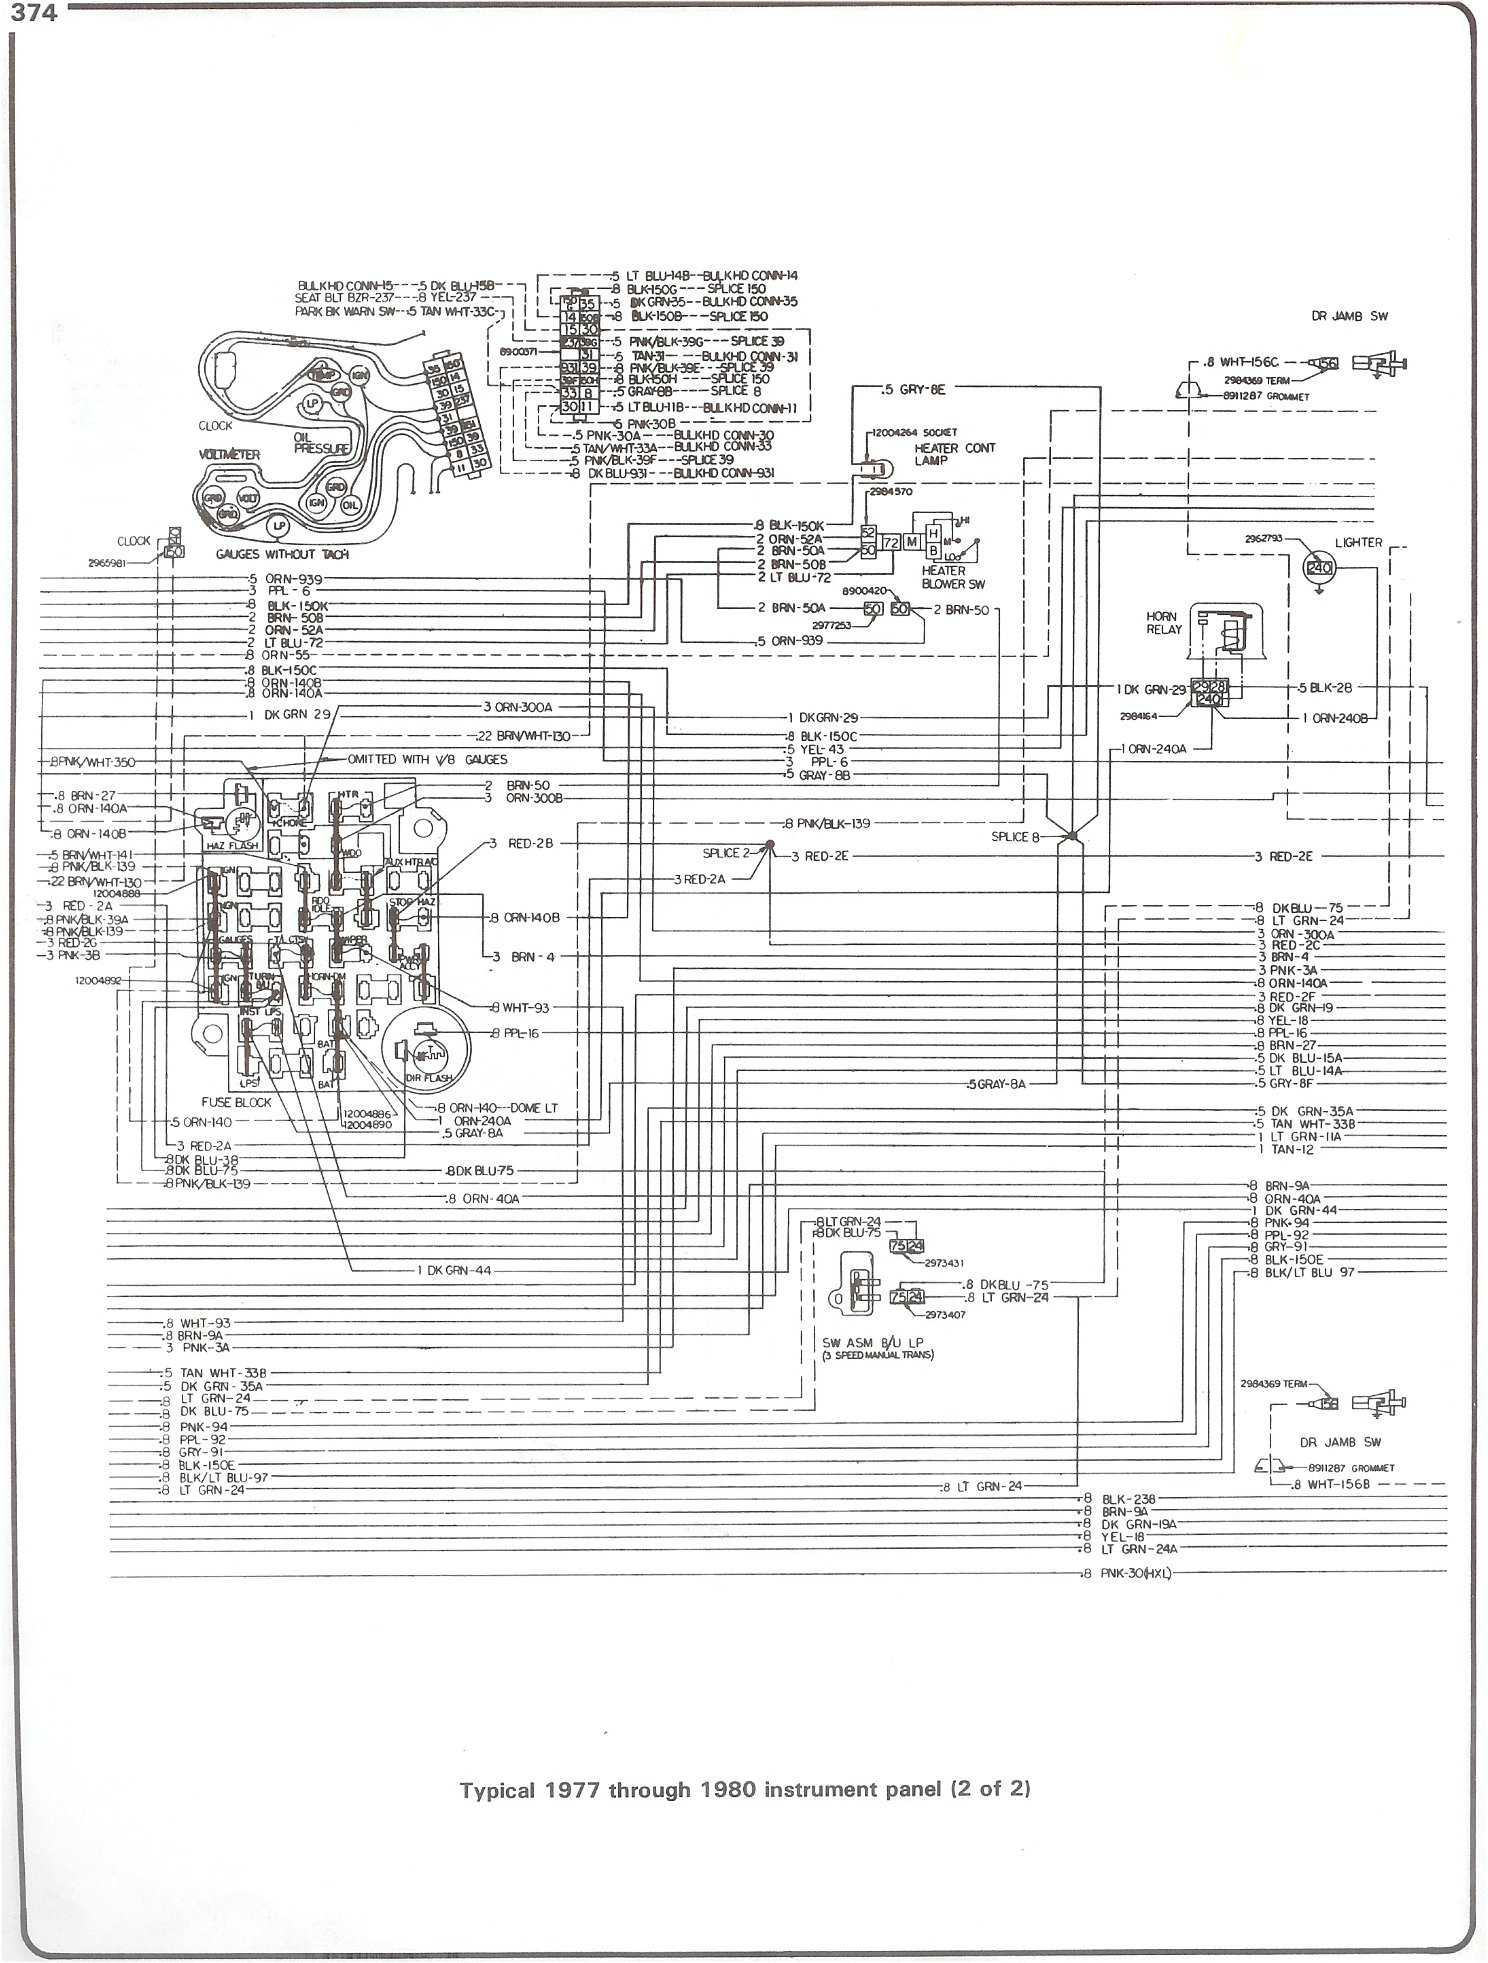 77 80_instrument_pg2 1978 chevy truck wiring diagram chevy malibu ignition wiring 1978 chevy truck fuse box diagram at alyssarenee.co